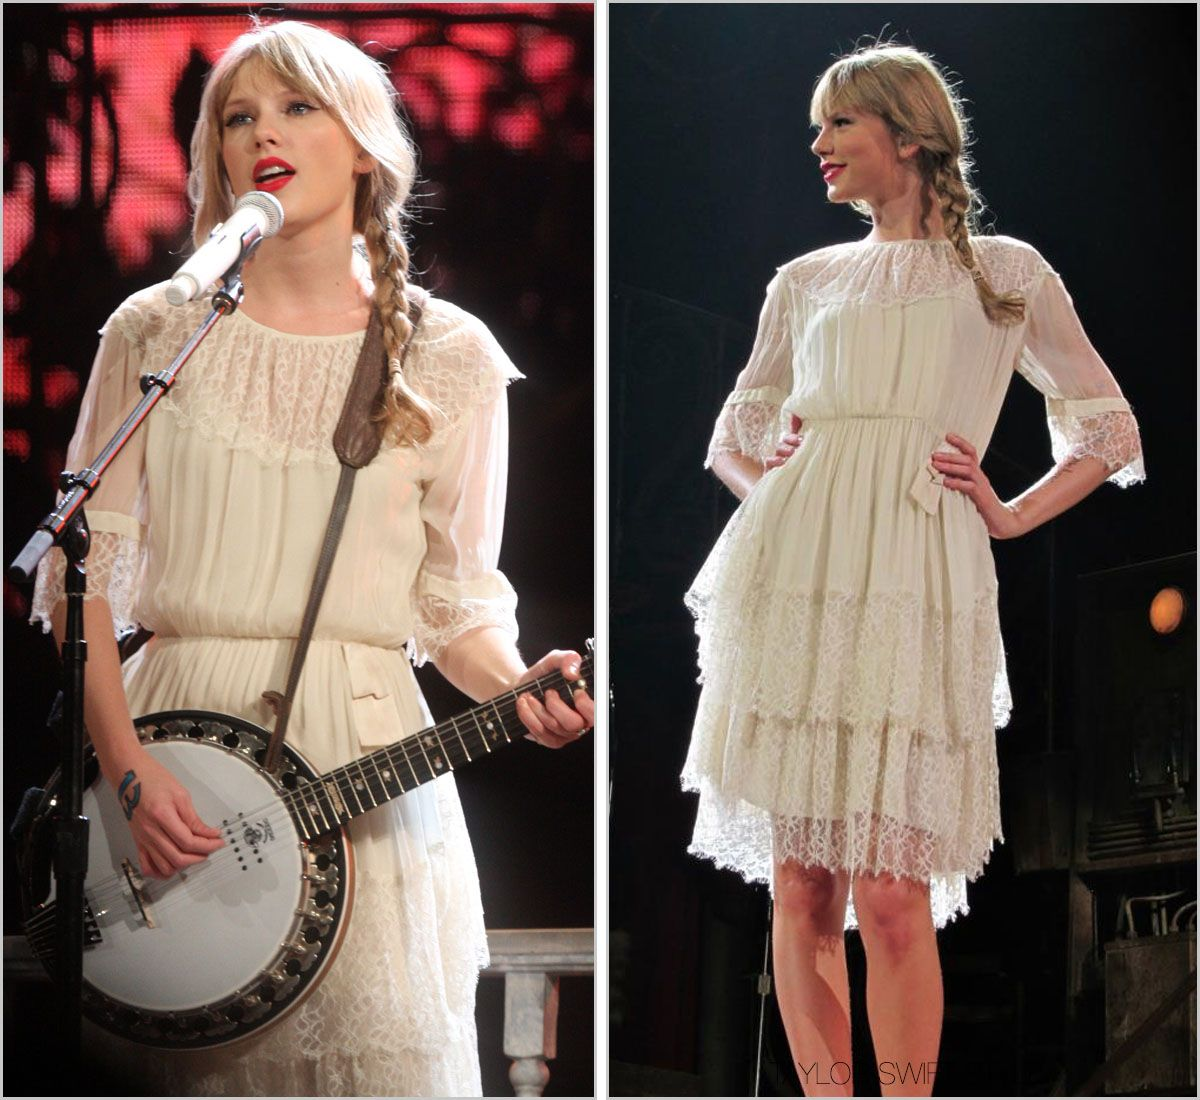 Taylor Swift Speak Now Tour - Our Song and Mean (mit ...